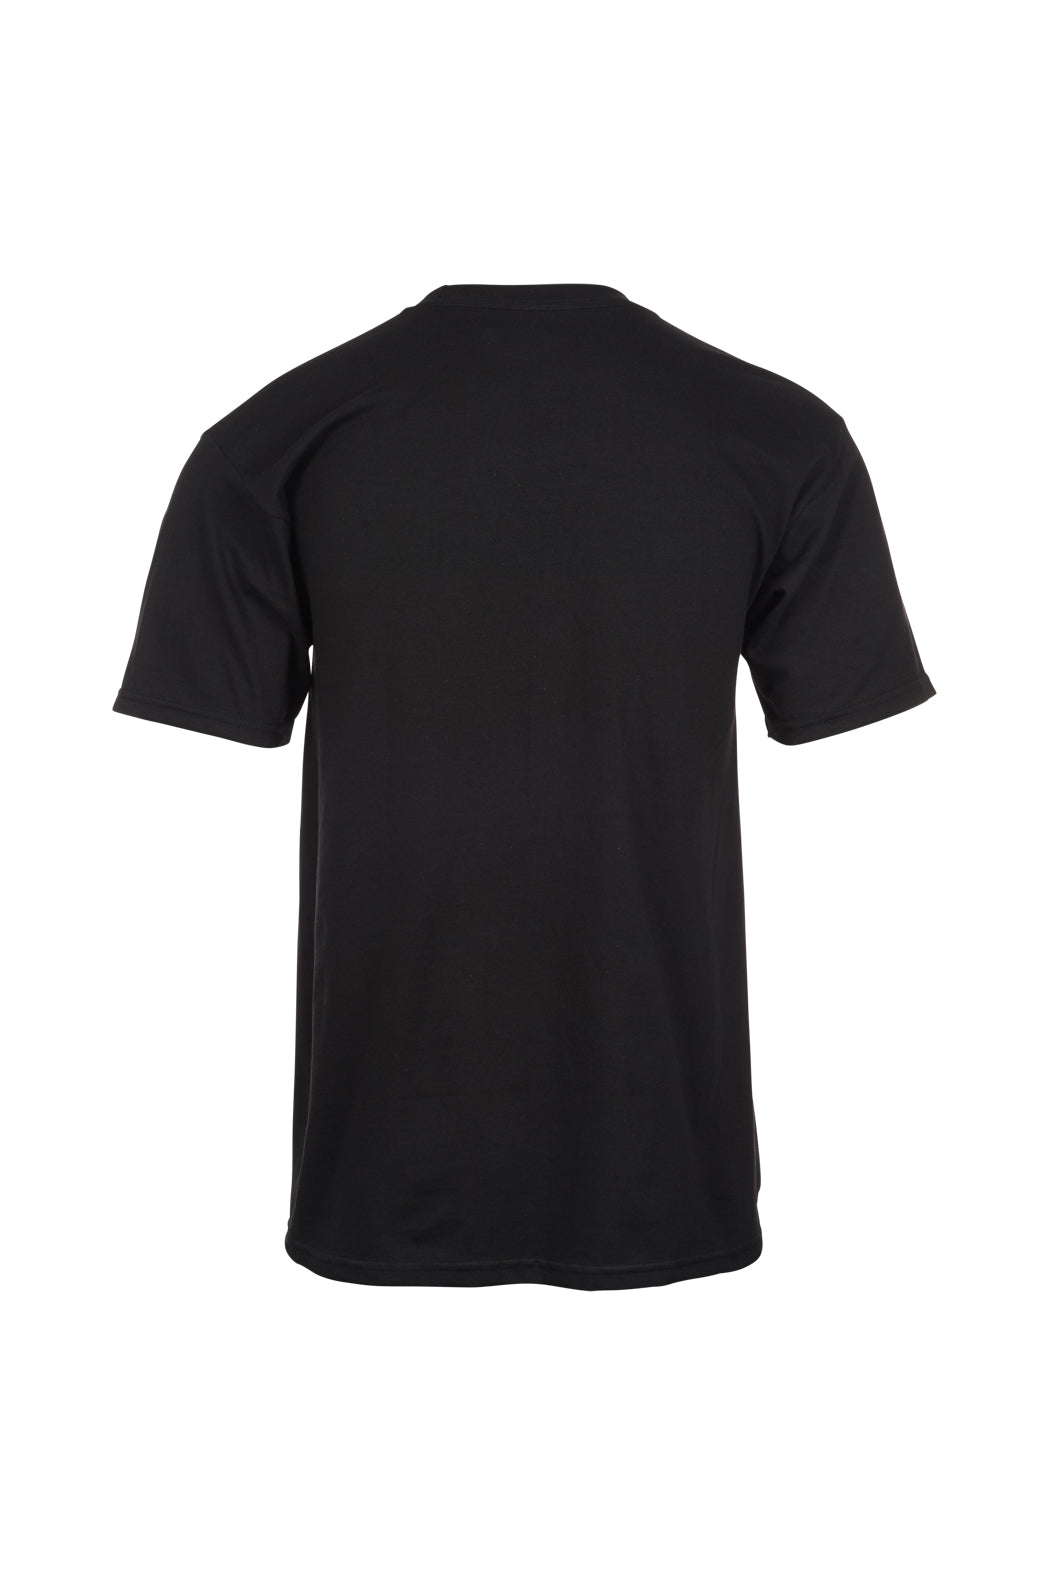 Taking Off Tee - Black